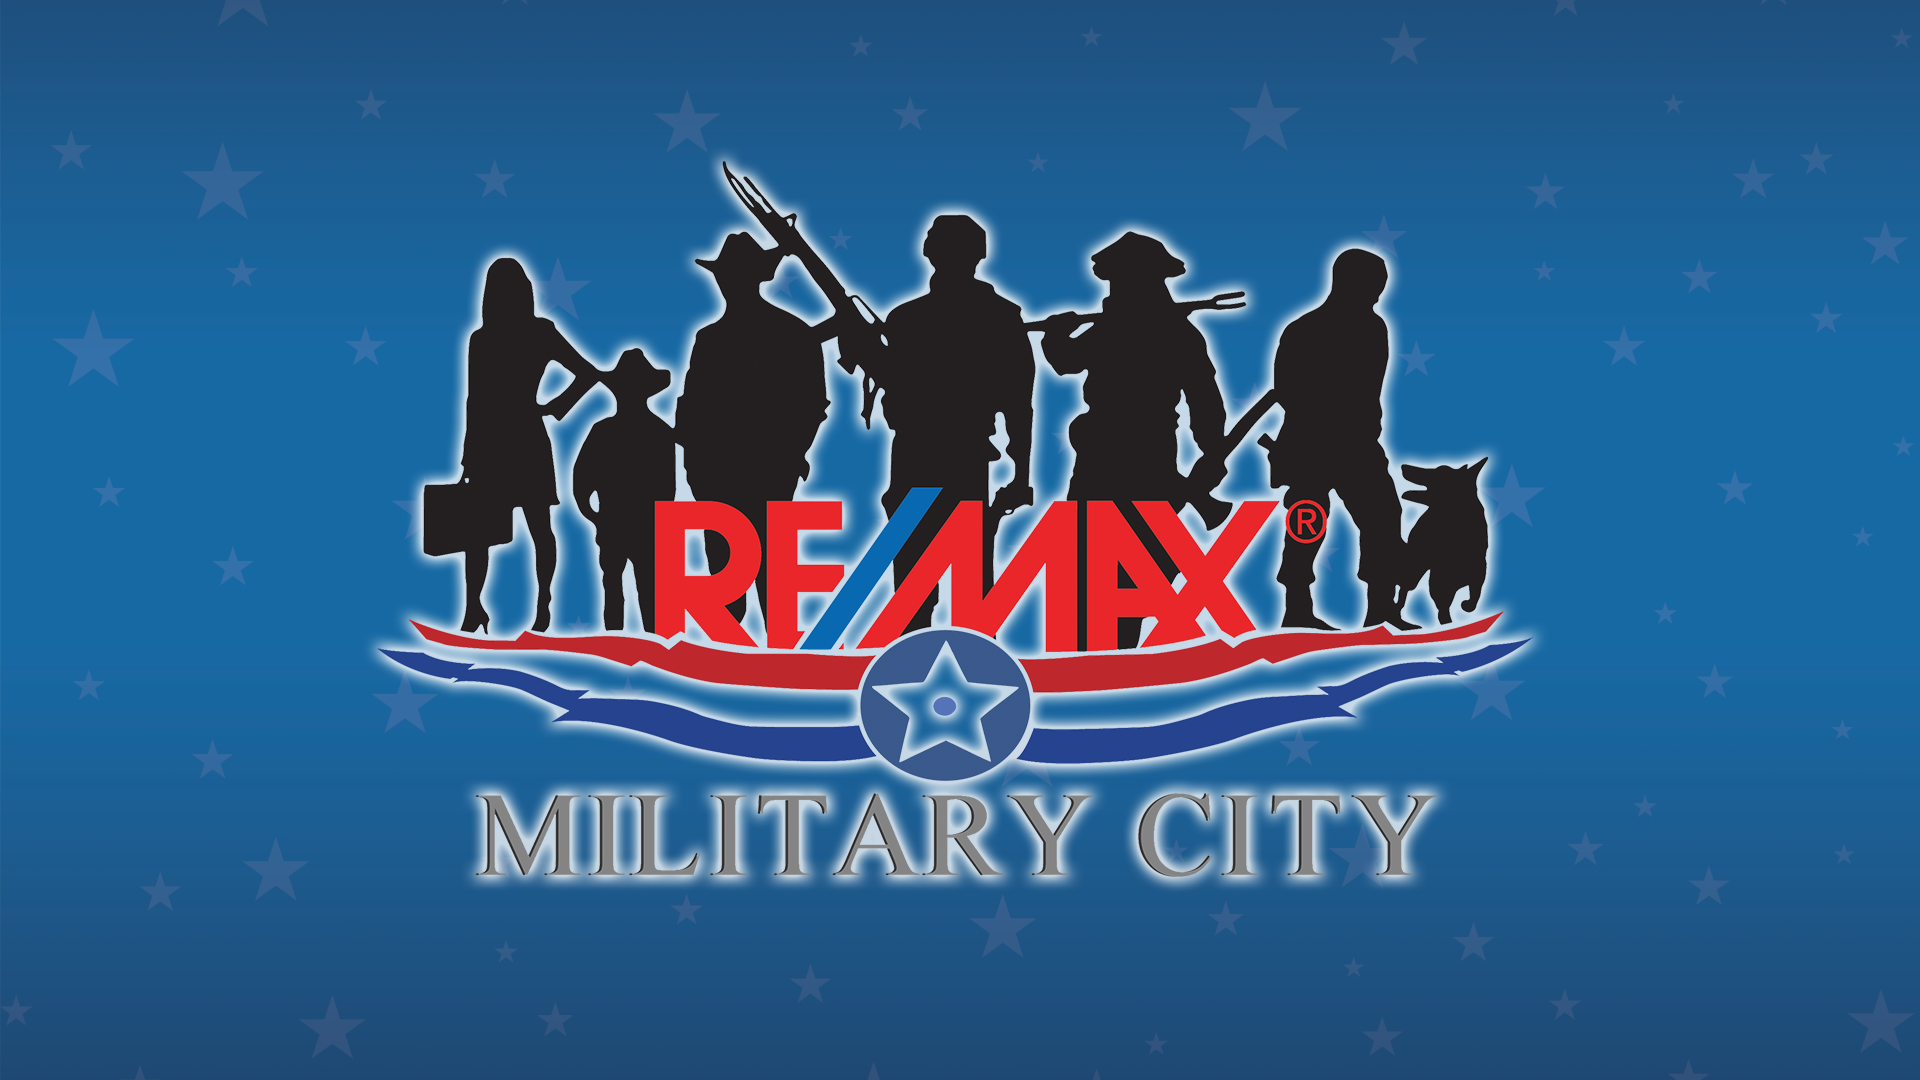 Levi Rodgers Real Estate Group @ RE/MAX Military City